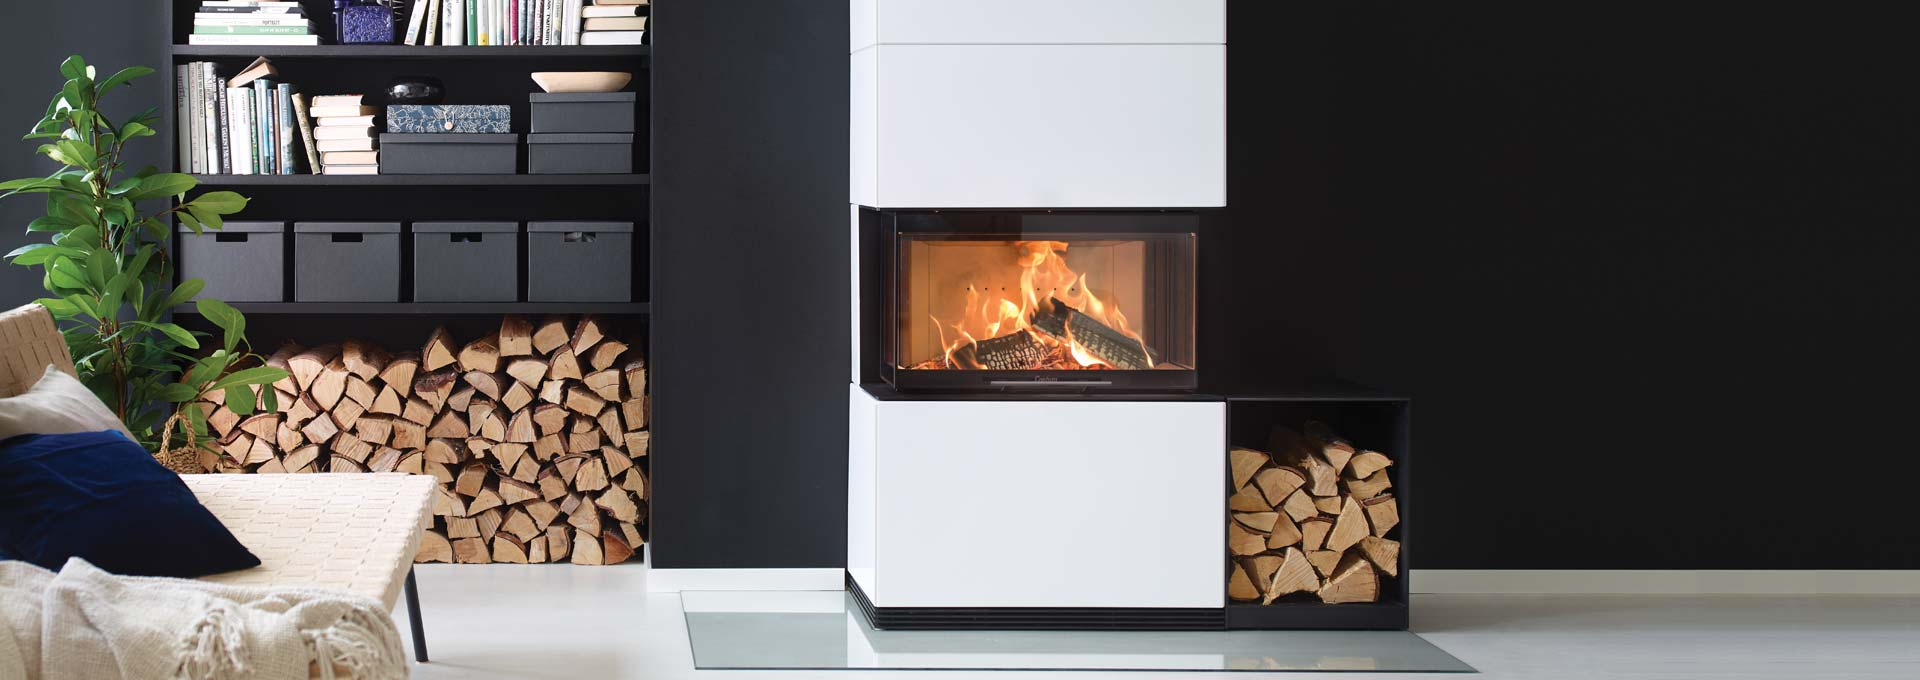 Gas Fireplace Tune Up Minneapolis Regency Fireplace Products Gas Wood Fireplaces Inserts Stoves